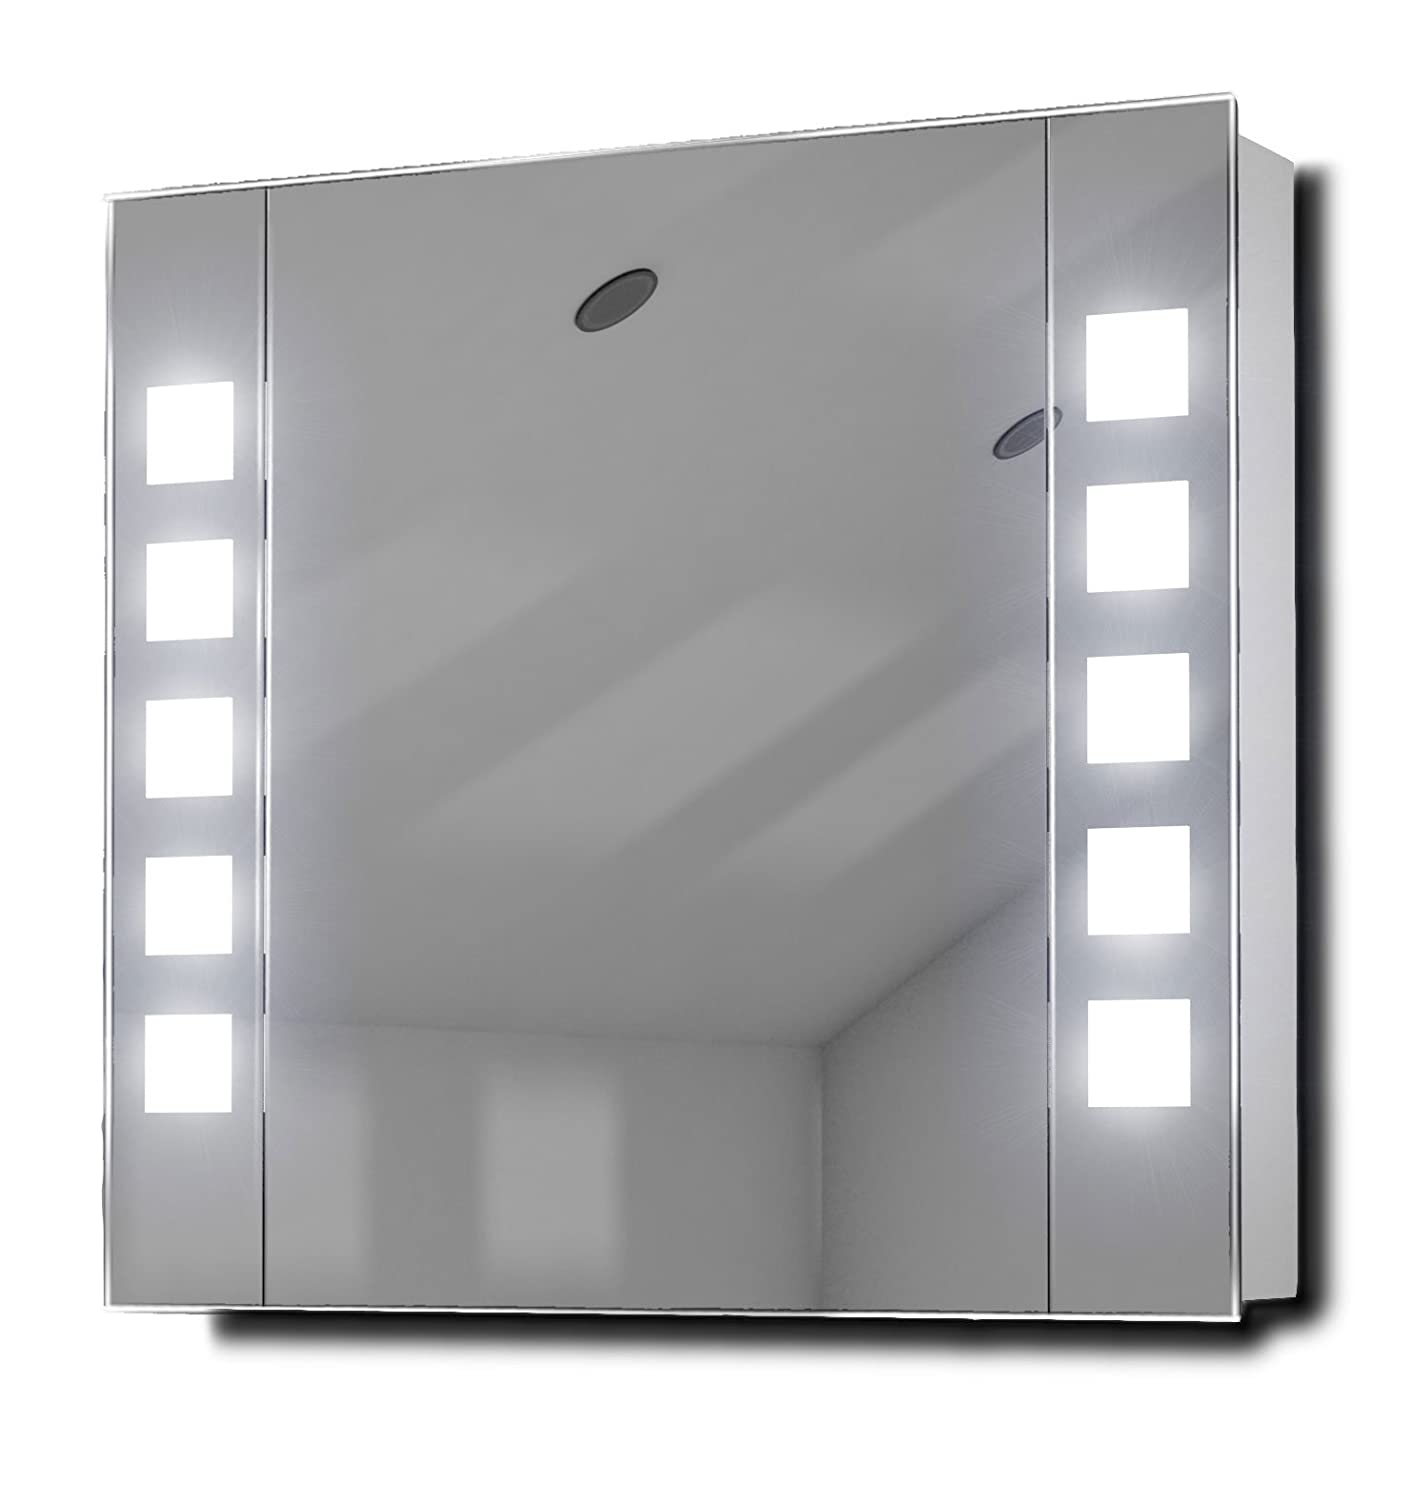 Noble LED Illuminated Bathroom Mirror Cabinet With Sensor Shaver K16 Amazoncouk Kitchen Home